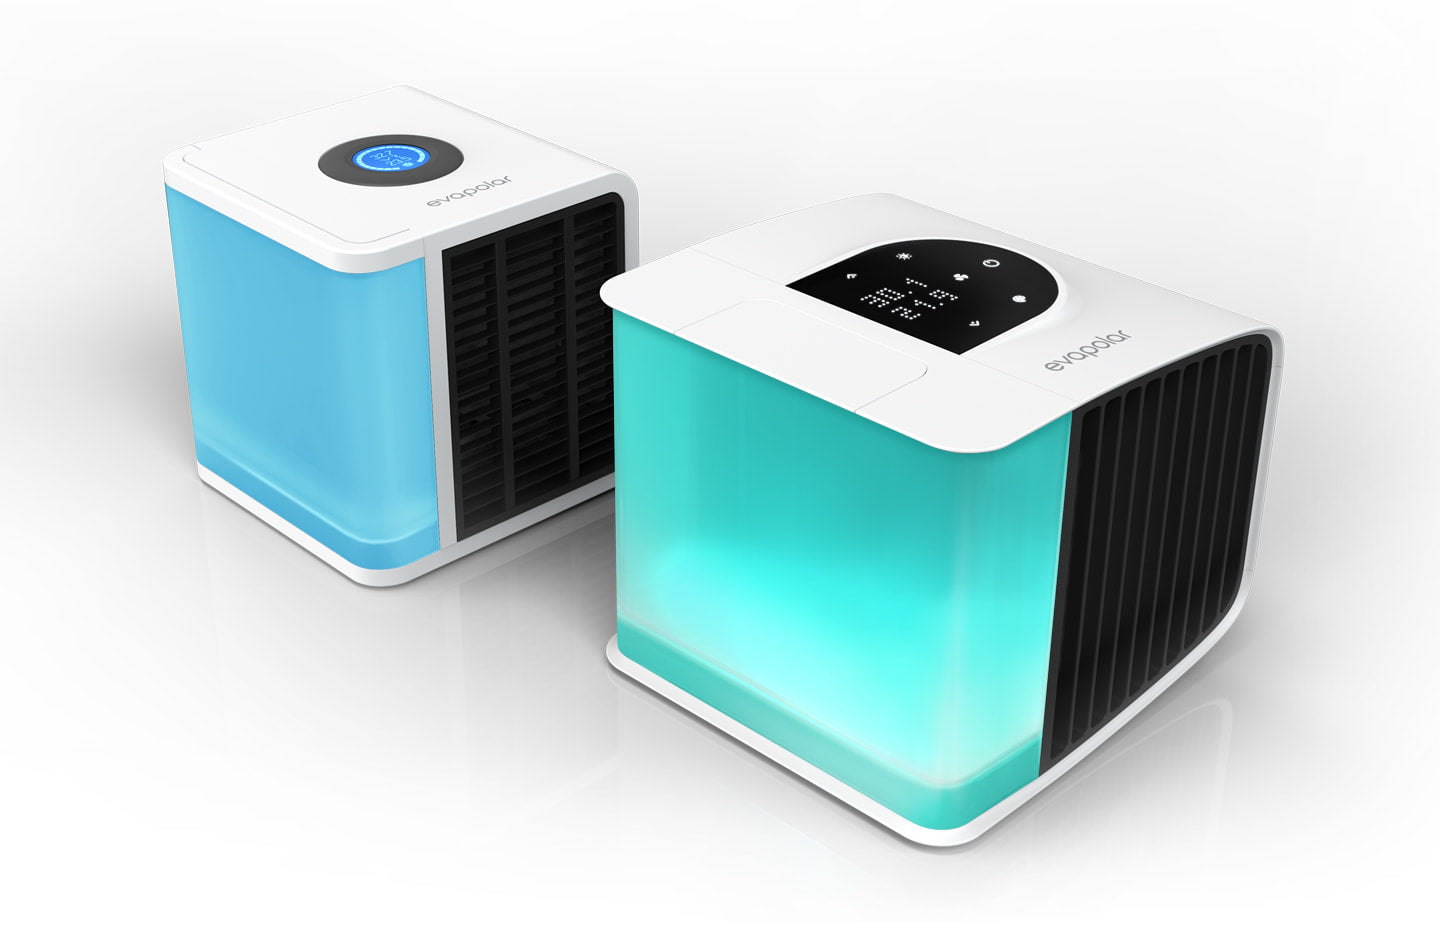 evapolar - personal cooling solutions. create your own personal